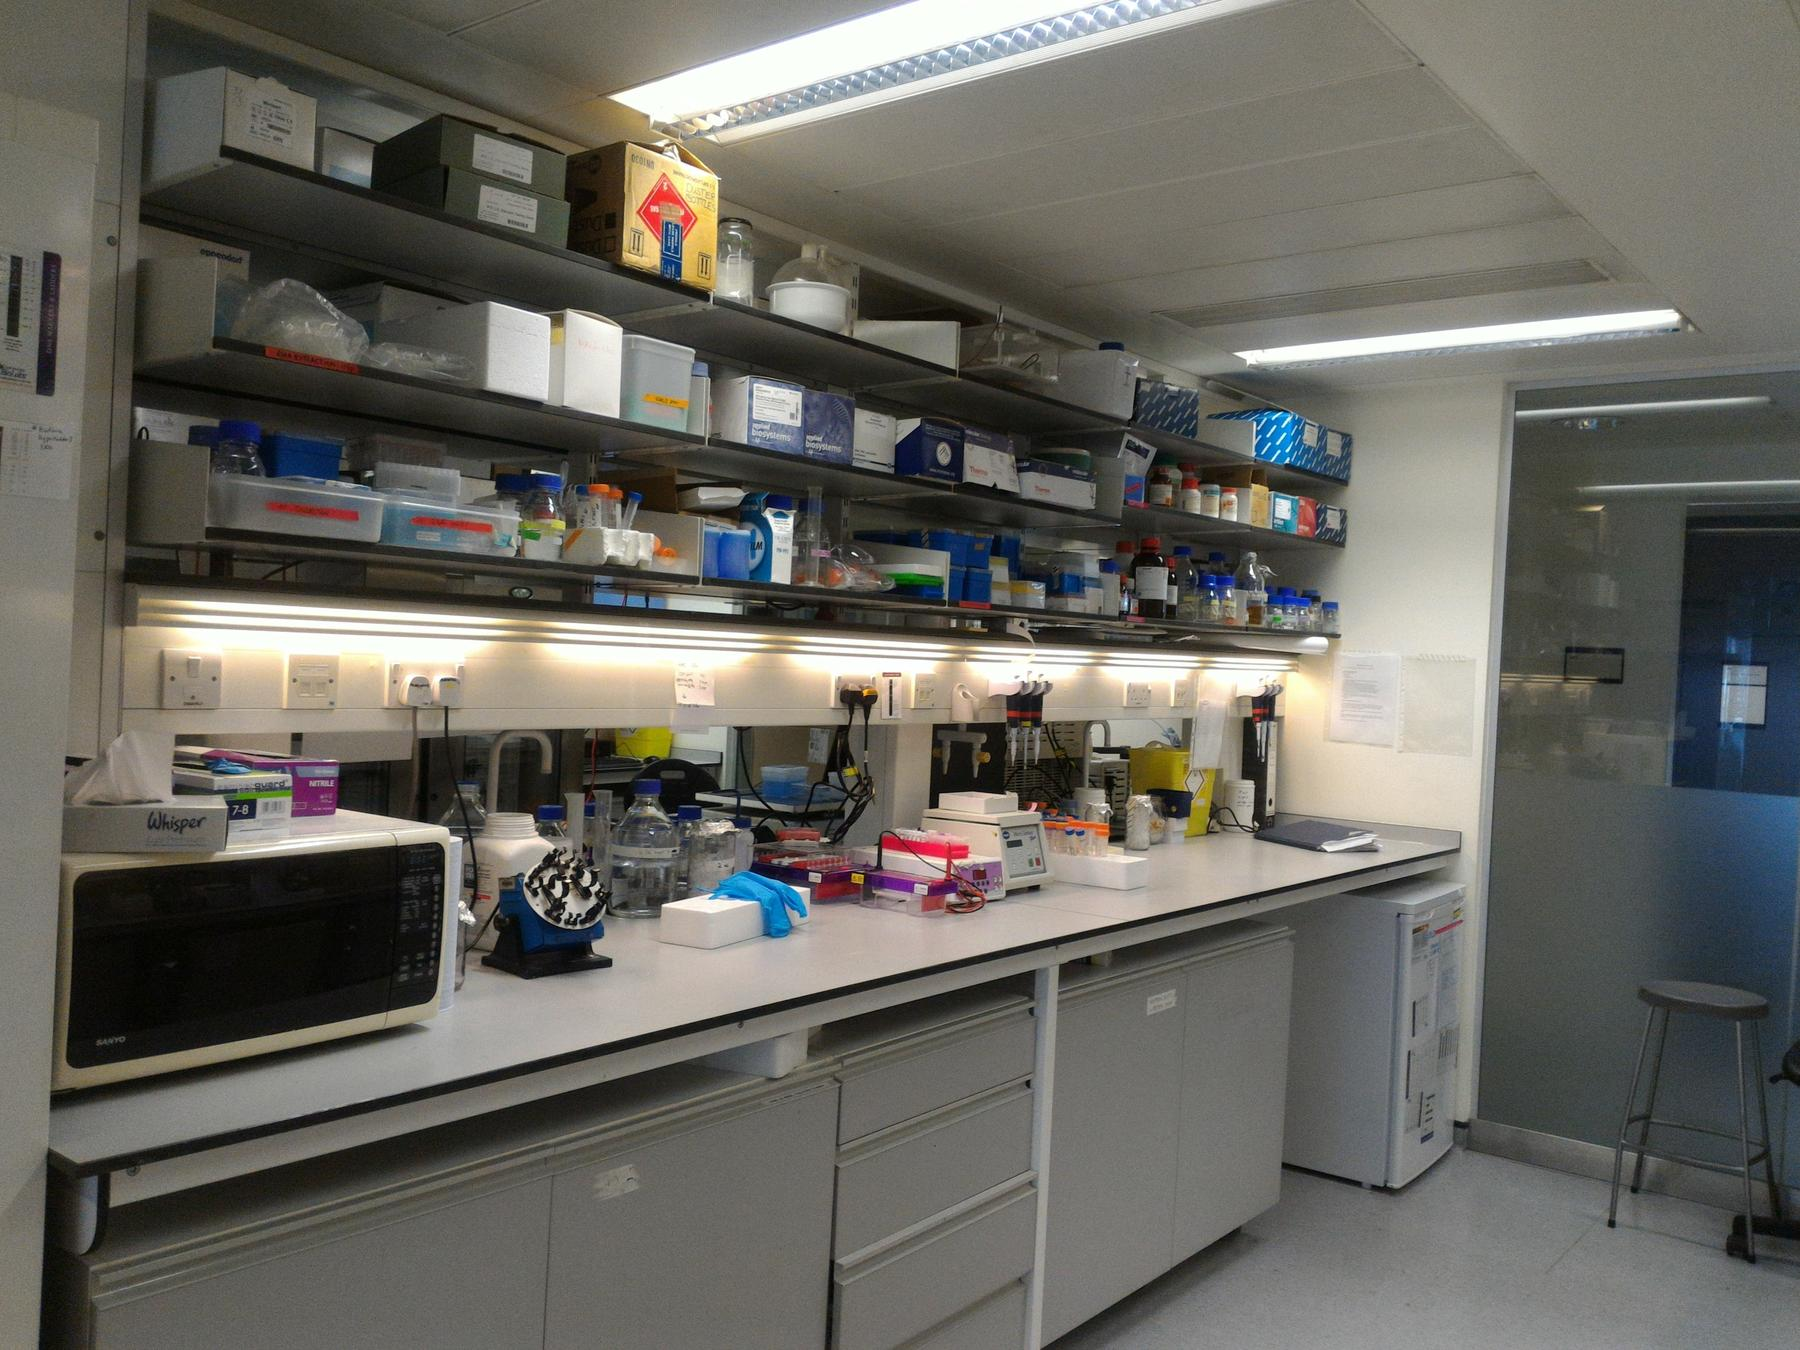 A corner of the wetlab